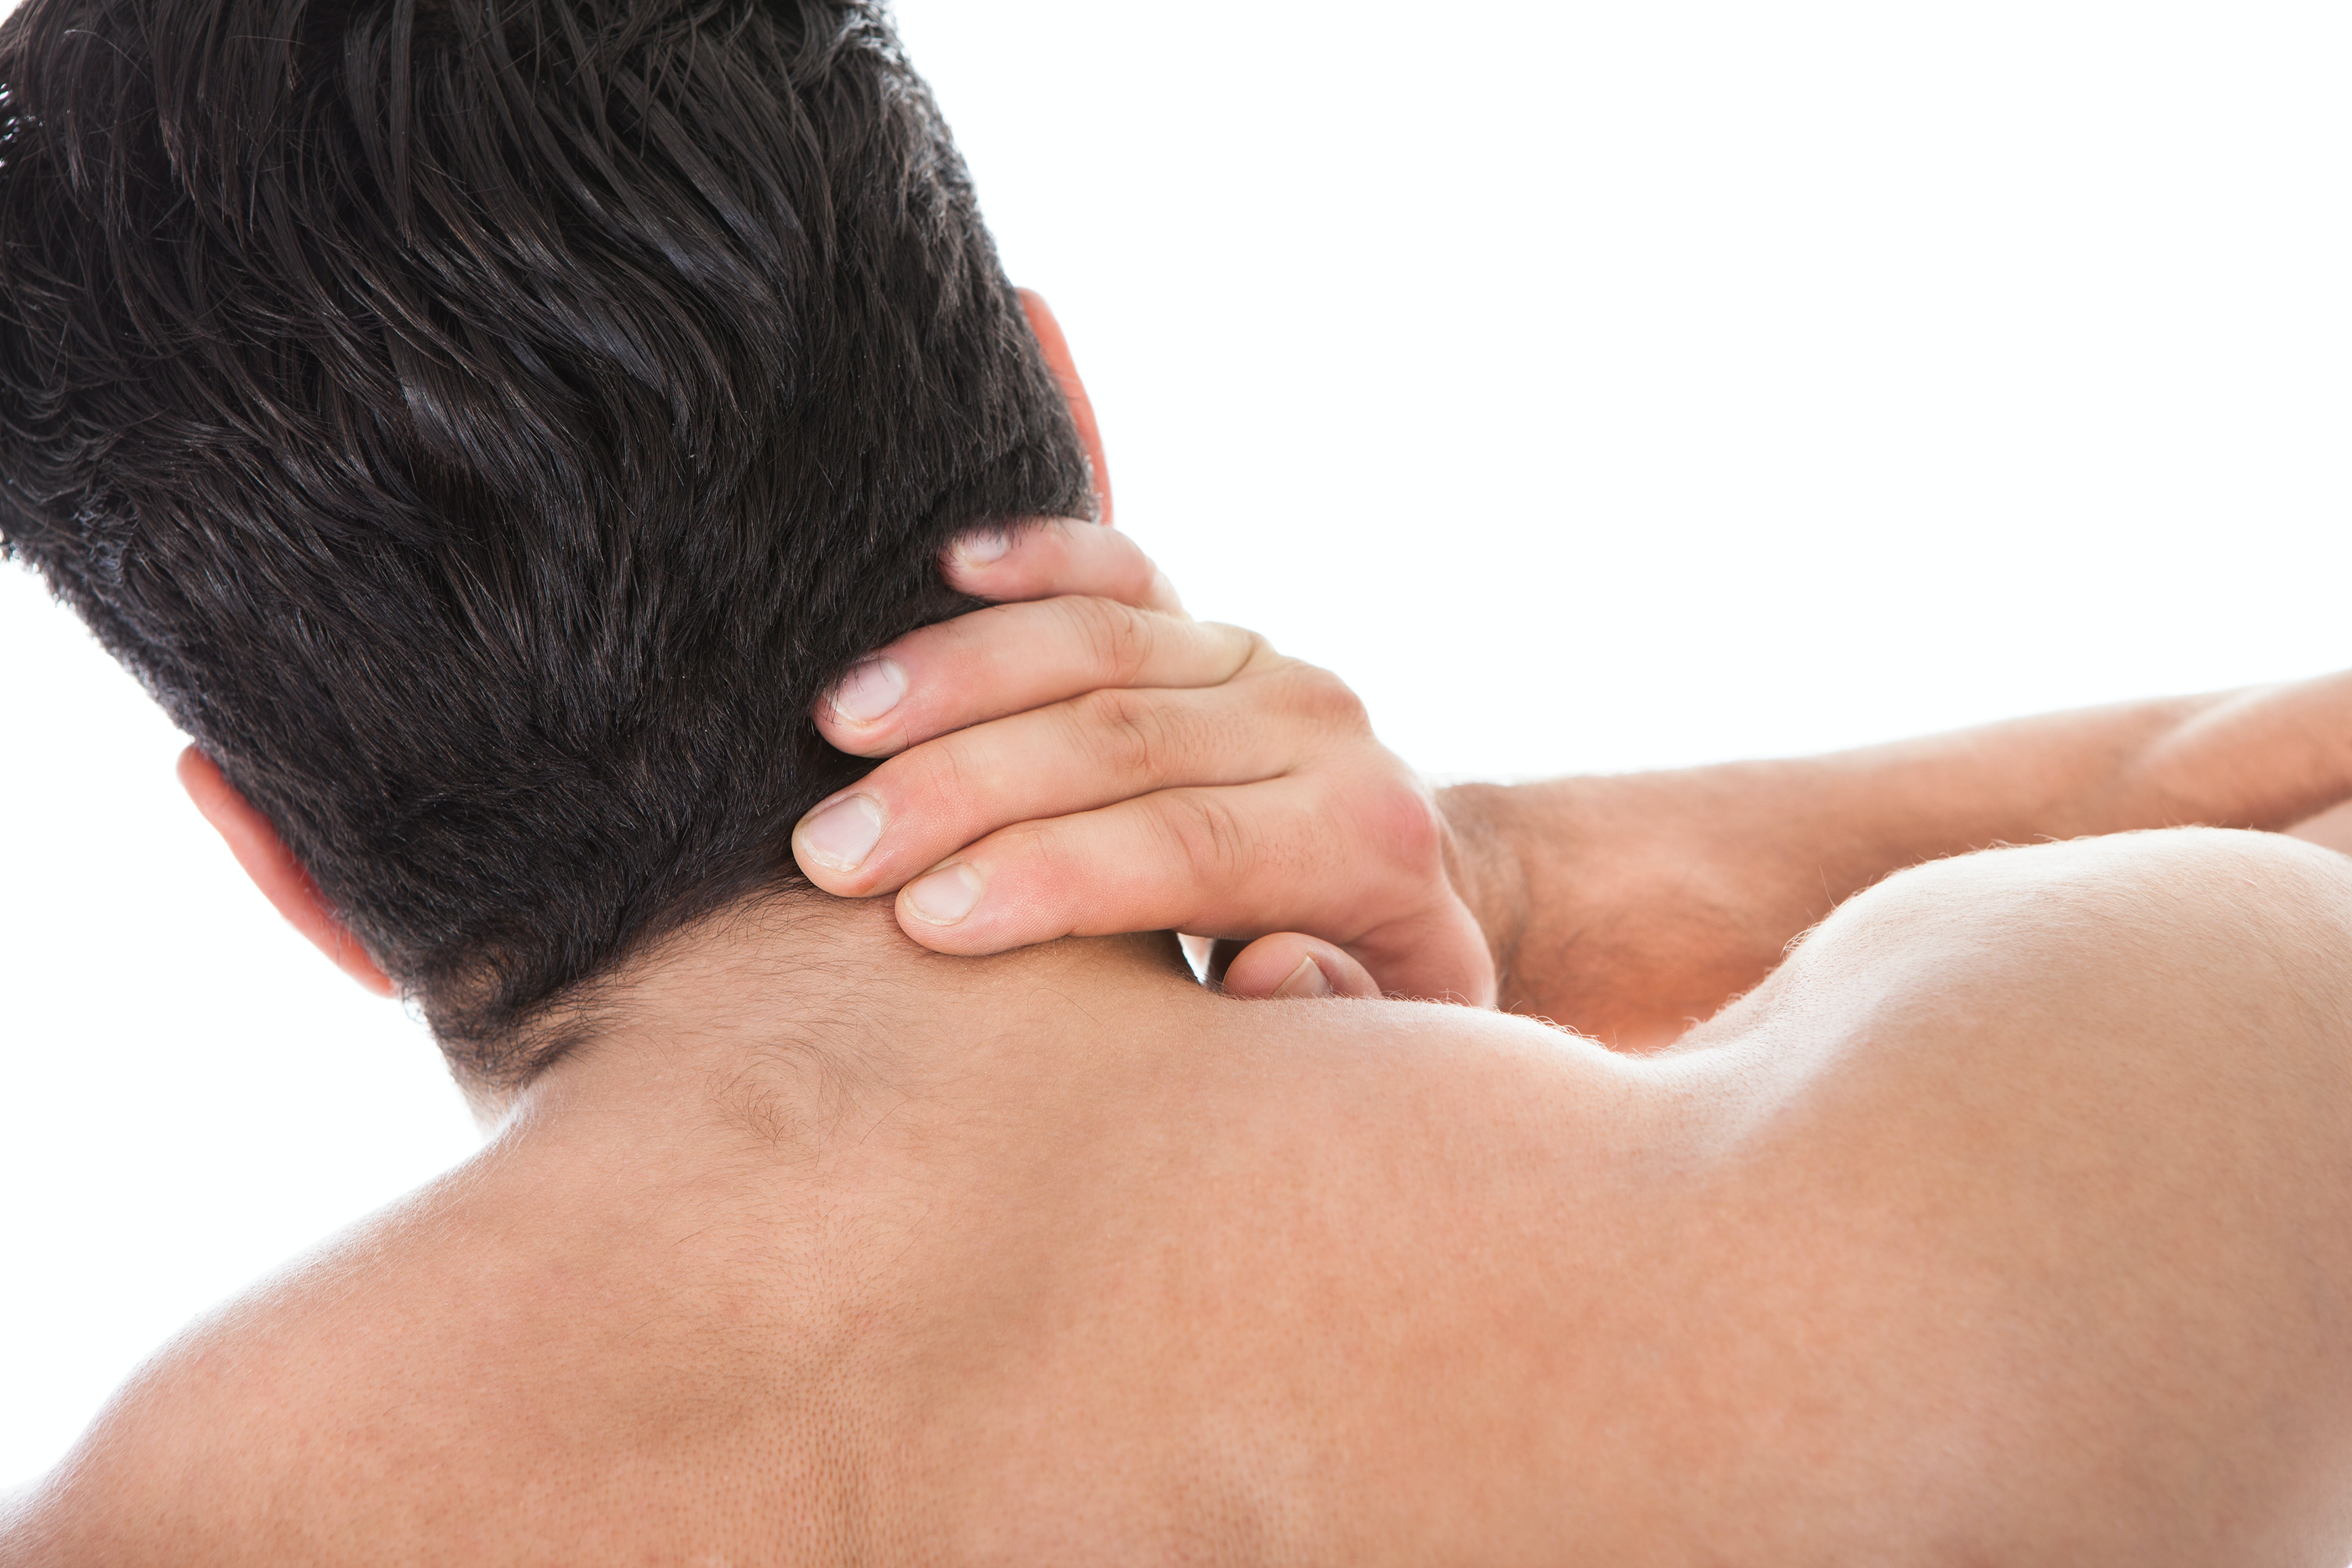 An image depicting a person suffering from neck bump symptoms